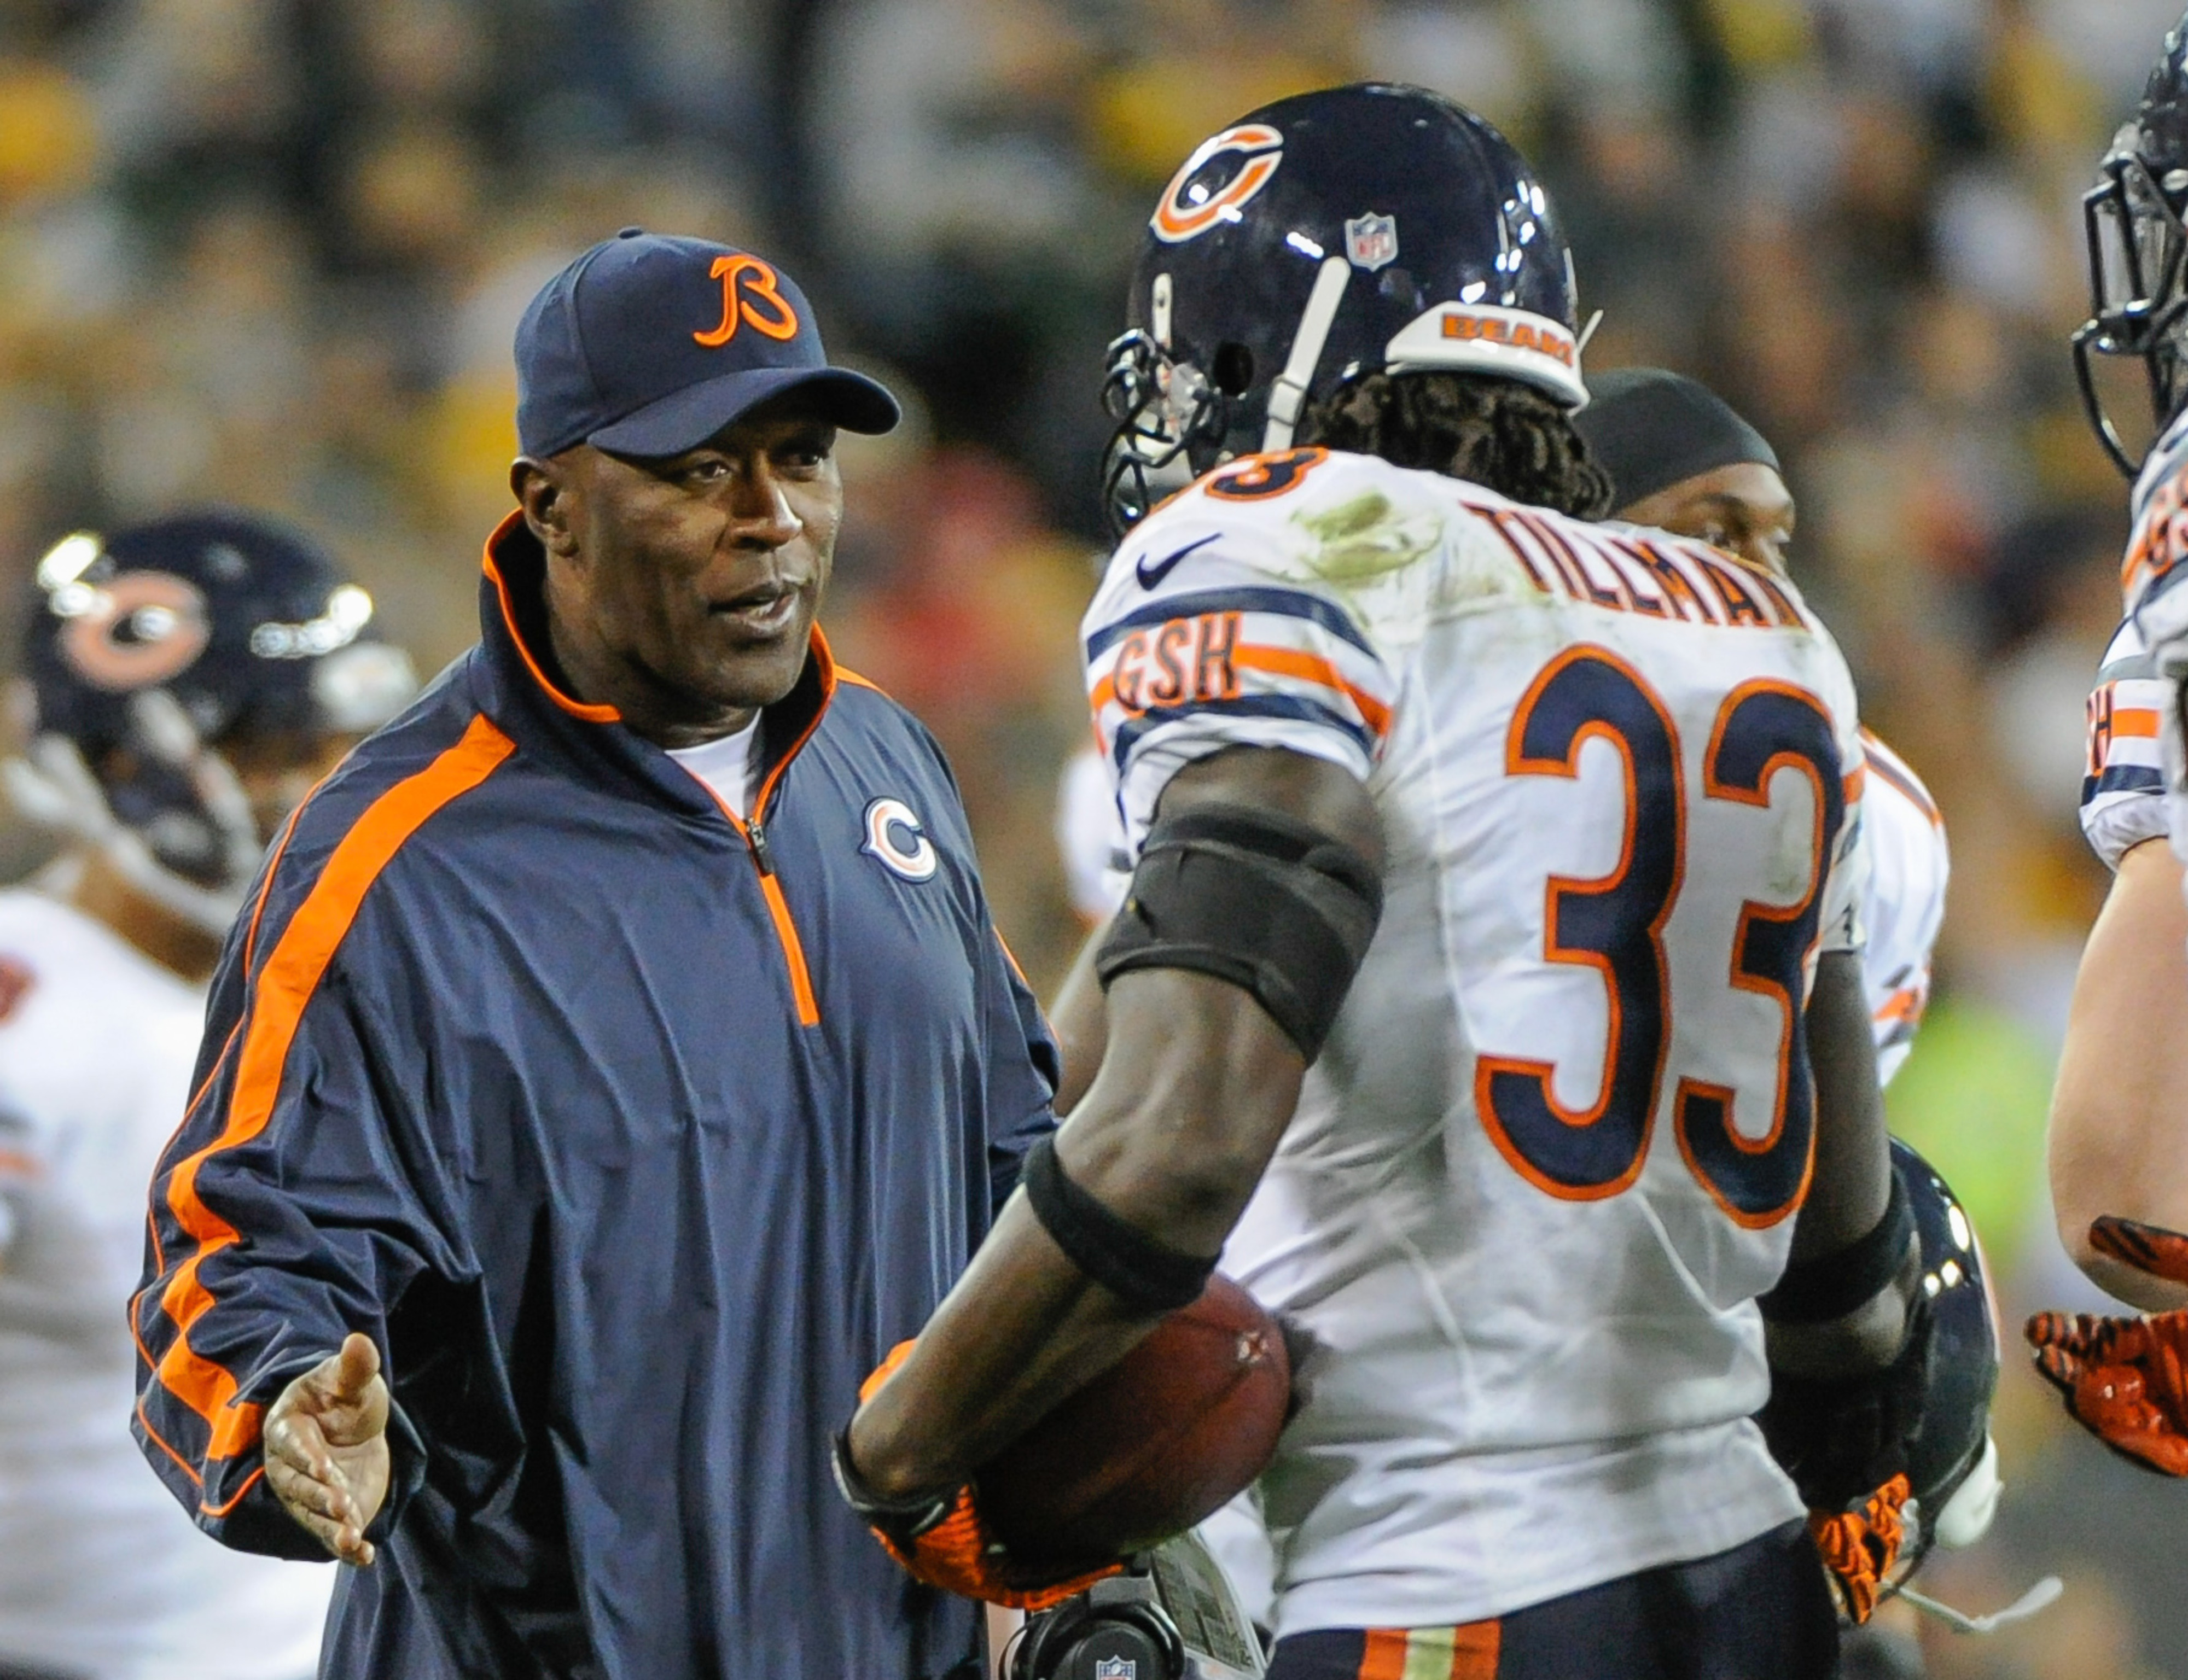 Sept 13, 2012; Green Bay, WI, USA;   Chicago Bears head coach Lovie Smith greets cornerback Charles Tillman (33) after a fumble recovery against the Green Bay Packers at Lambeau Field.  Mandatory Credit: Benny Sieu-US PRESSWIRE